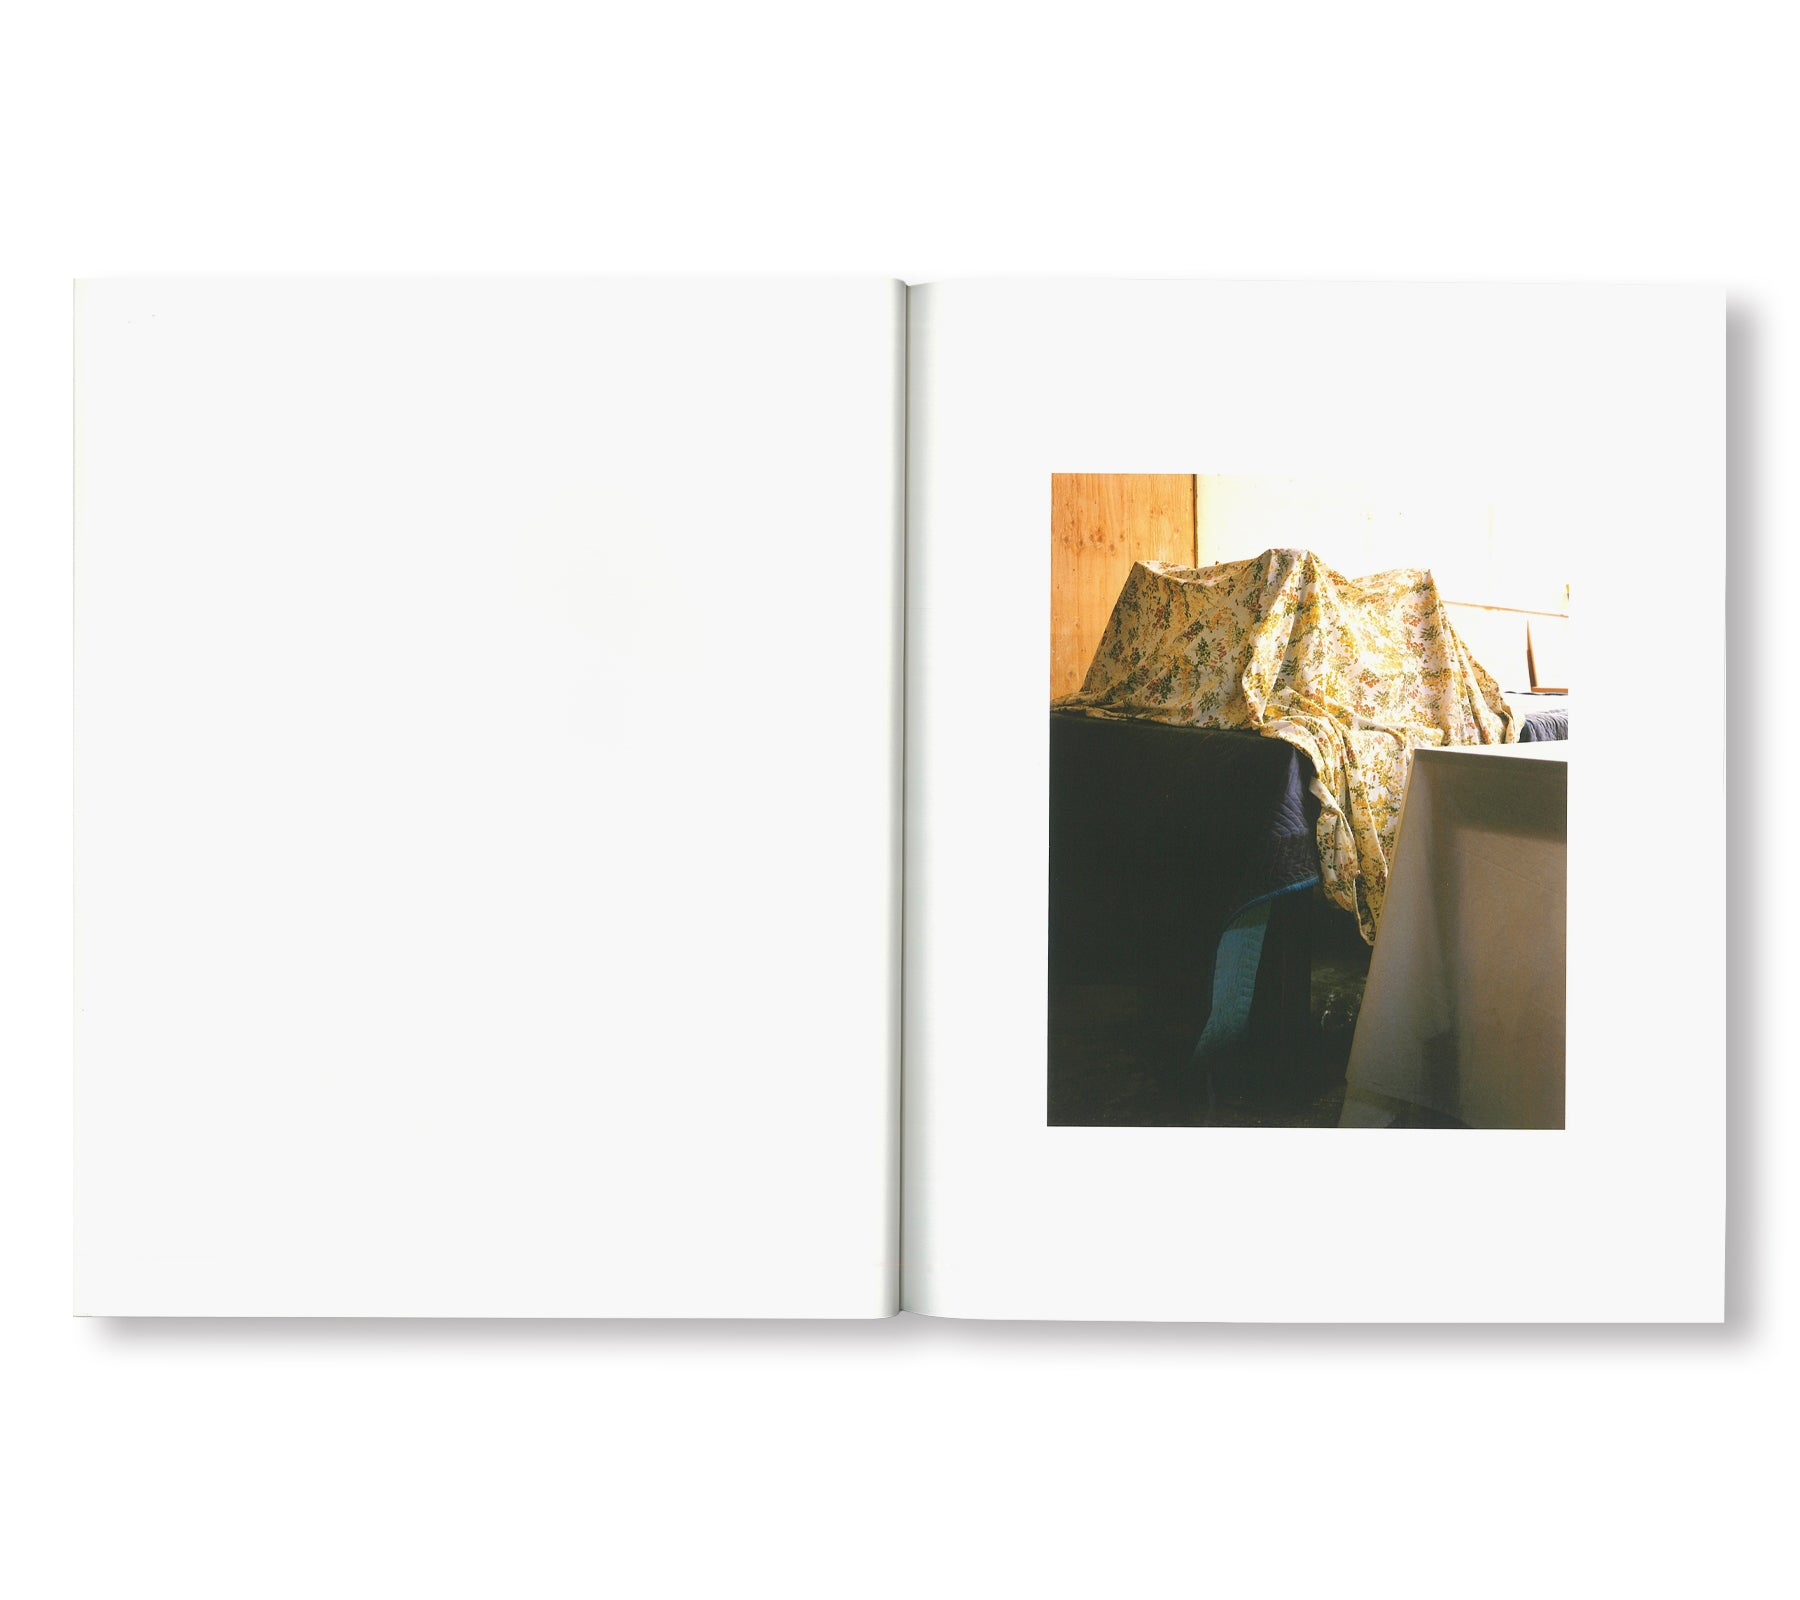 SPARE BEDROOM by Roe Ethridge [SIGNED]